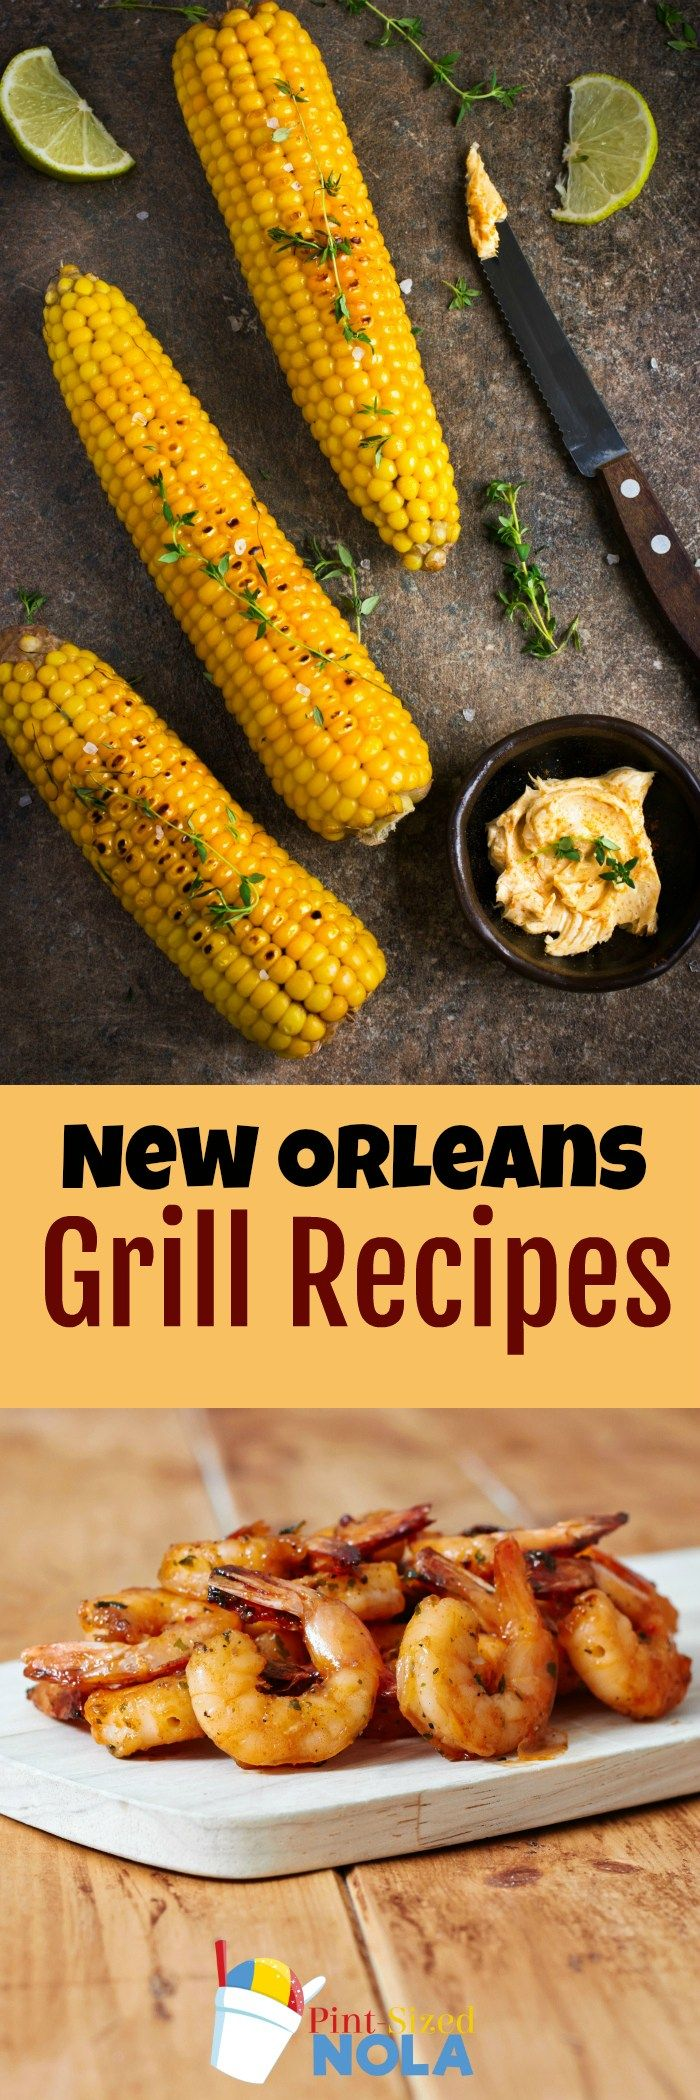 New Orleans Grill Recipes